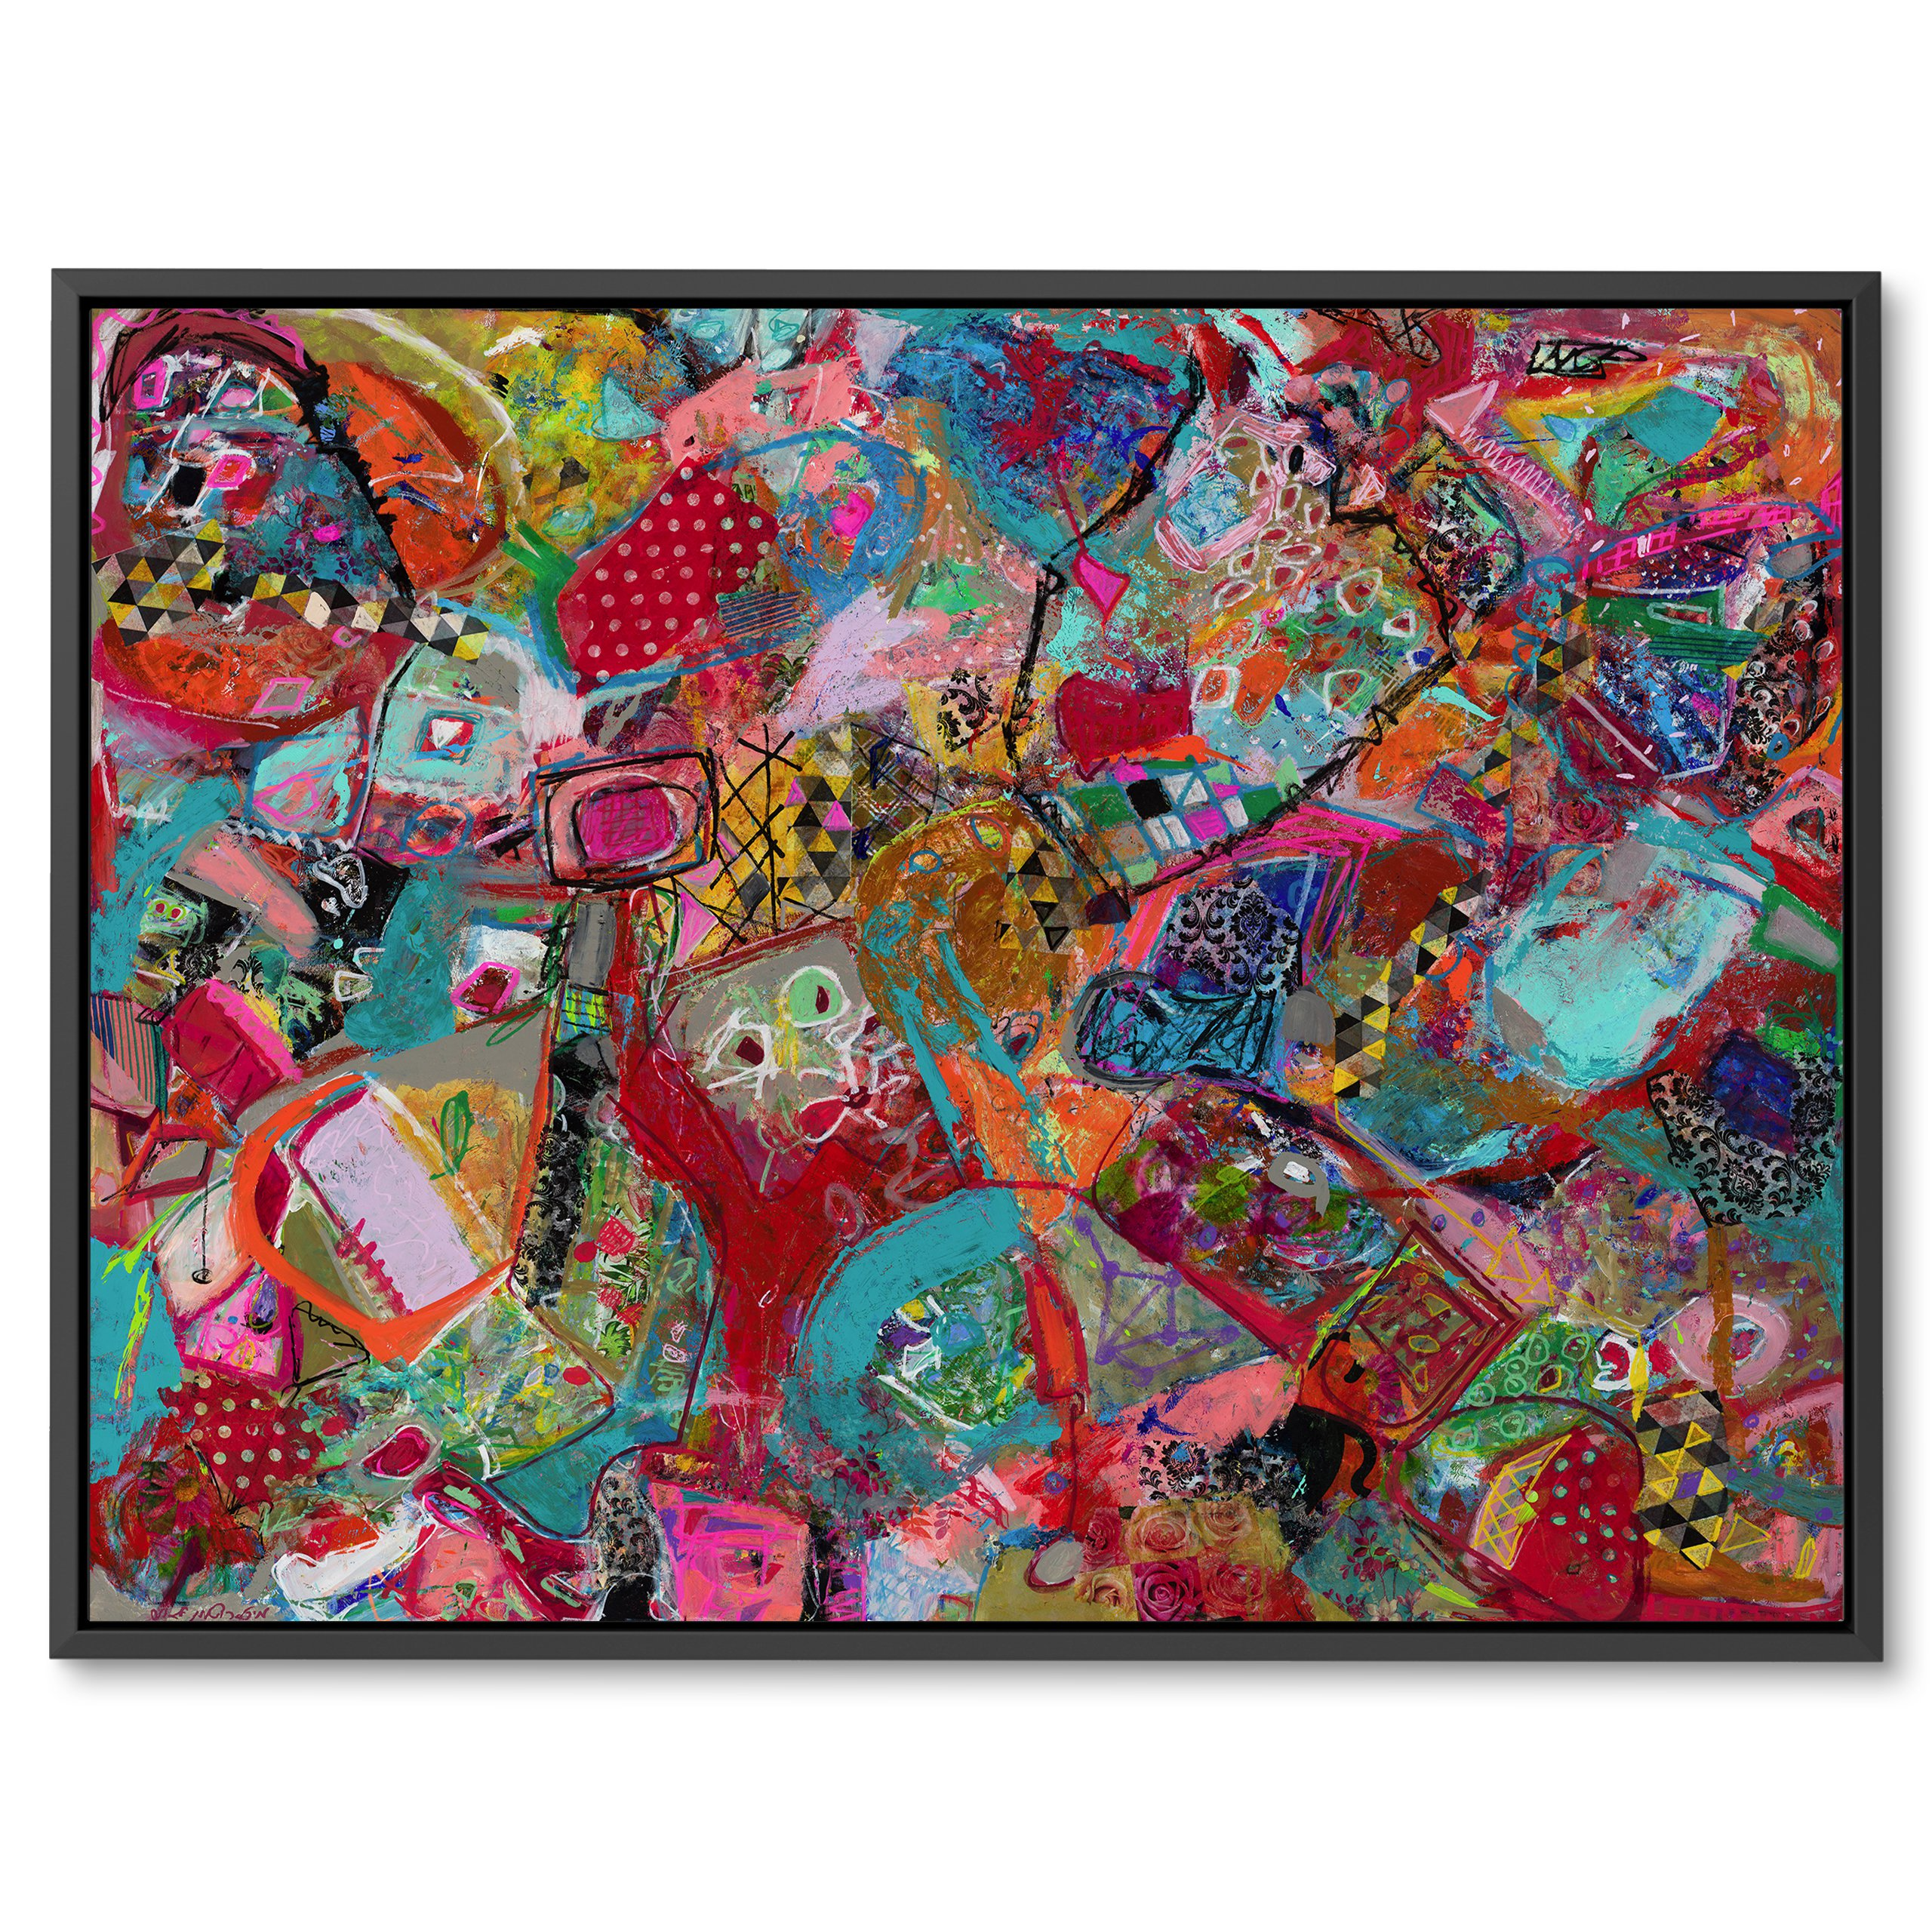 Mostly red modern abstract art on canvas for interior design, Childhood fragments by Michal Rotman Laor